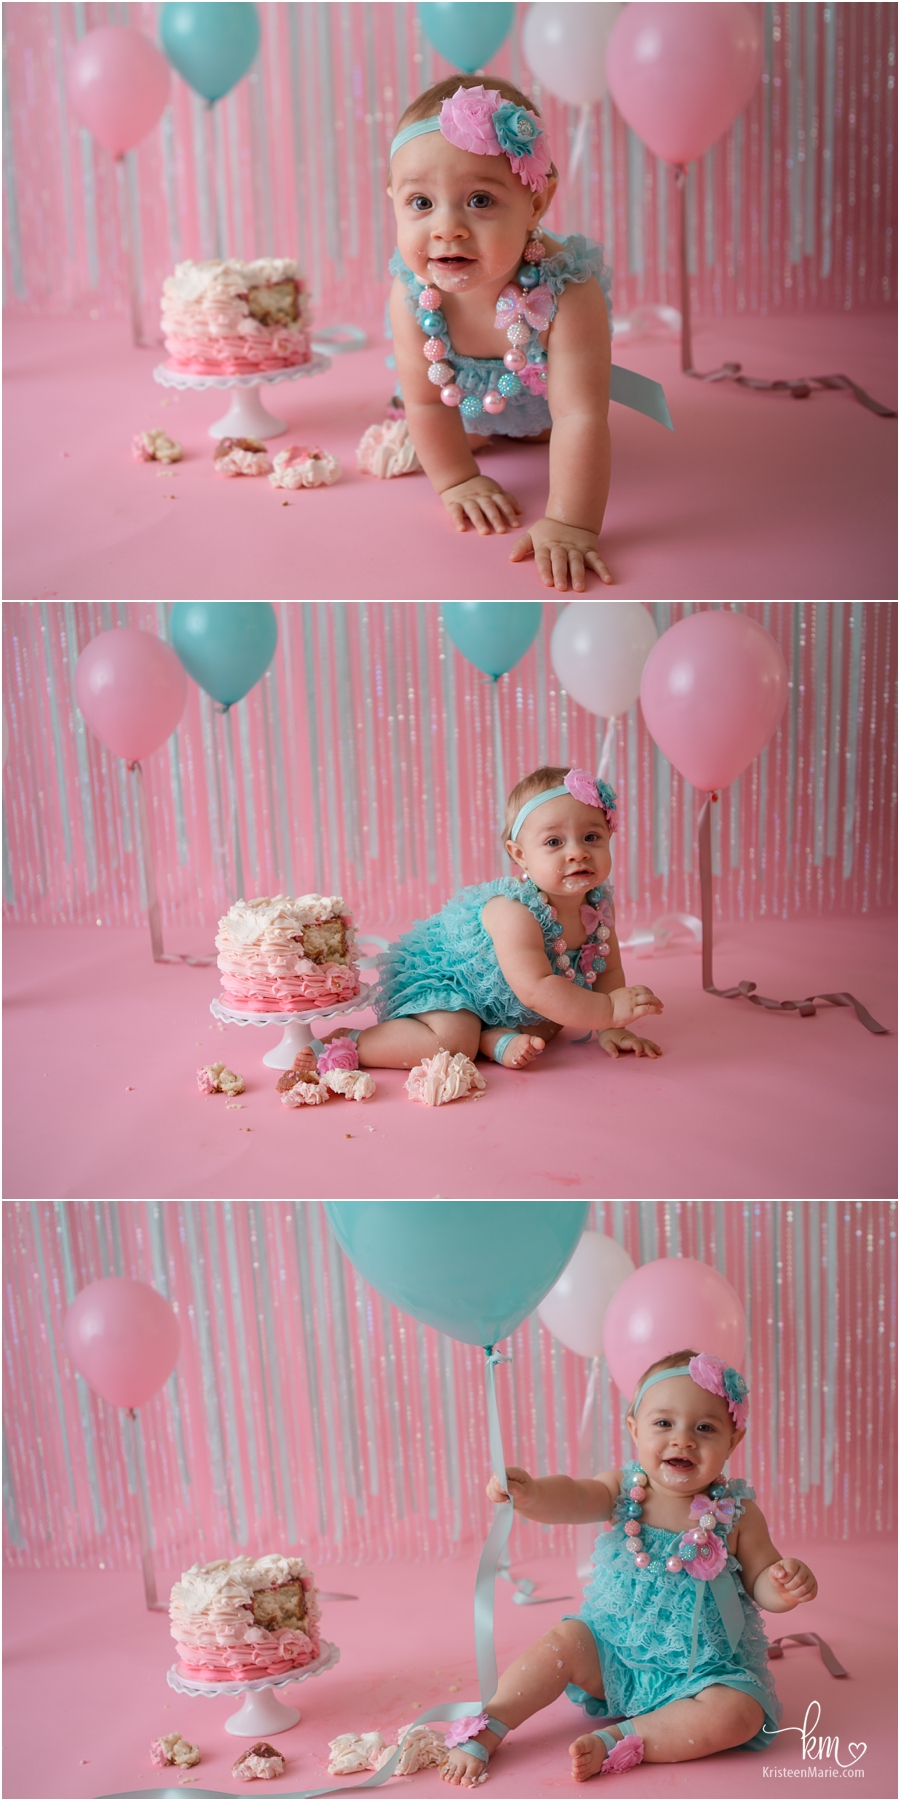 pink and teal ombre cake smash session for 1st birthday in Indianapolis, IN